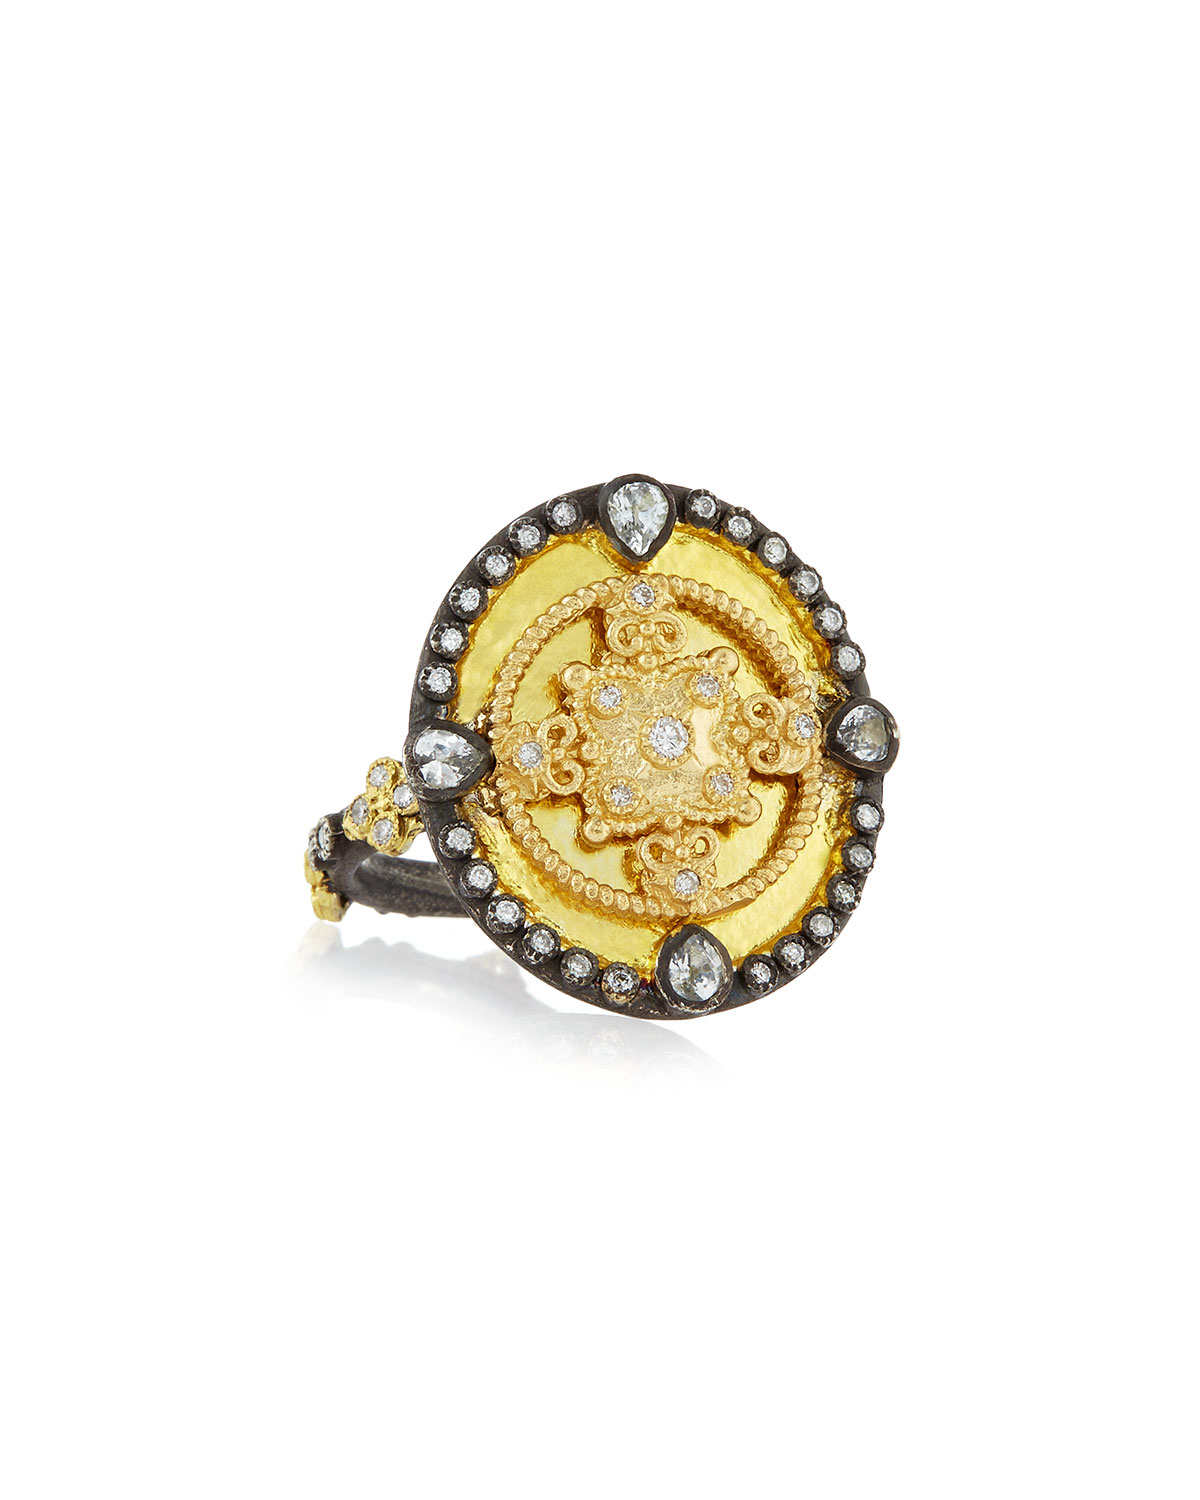 Armenta OId World Heraldry Oval Shield Ring, Size 5-8